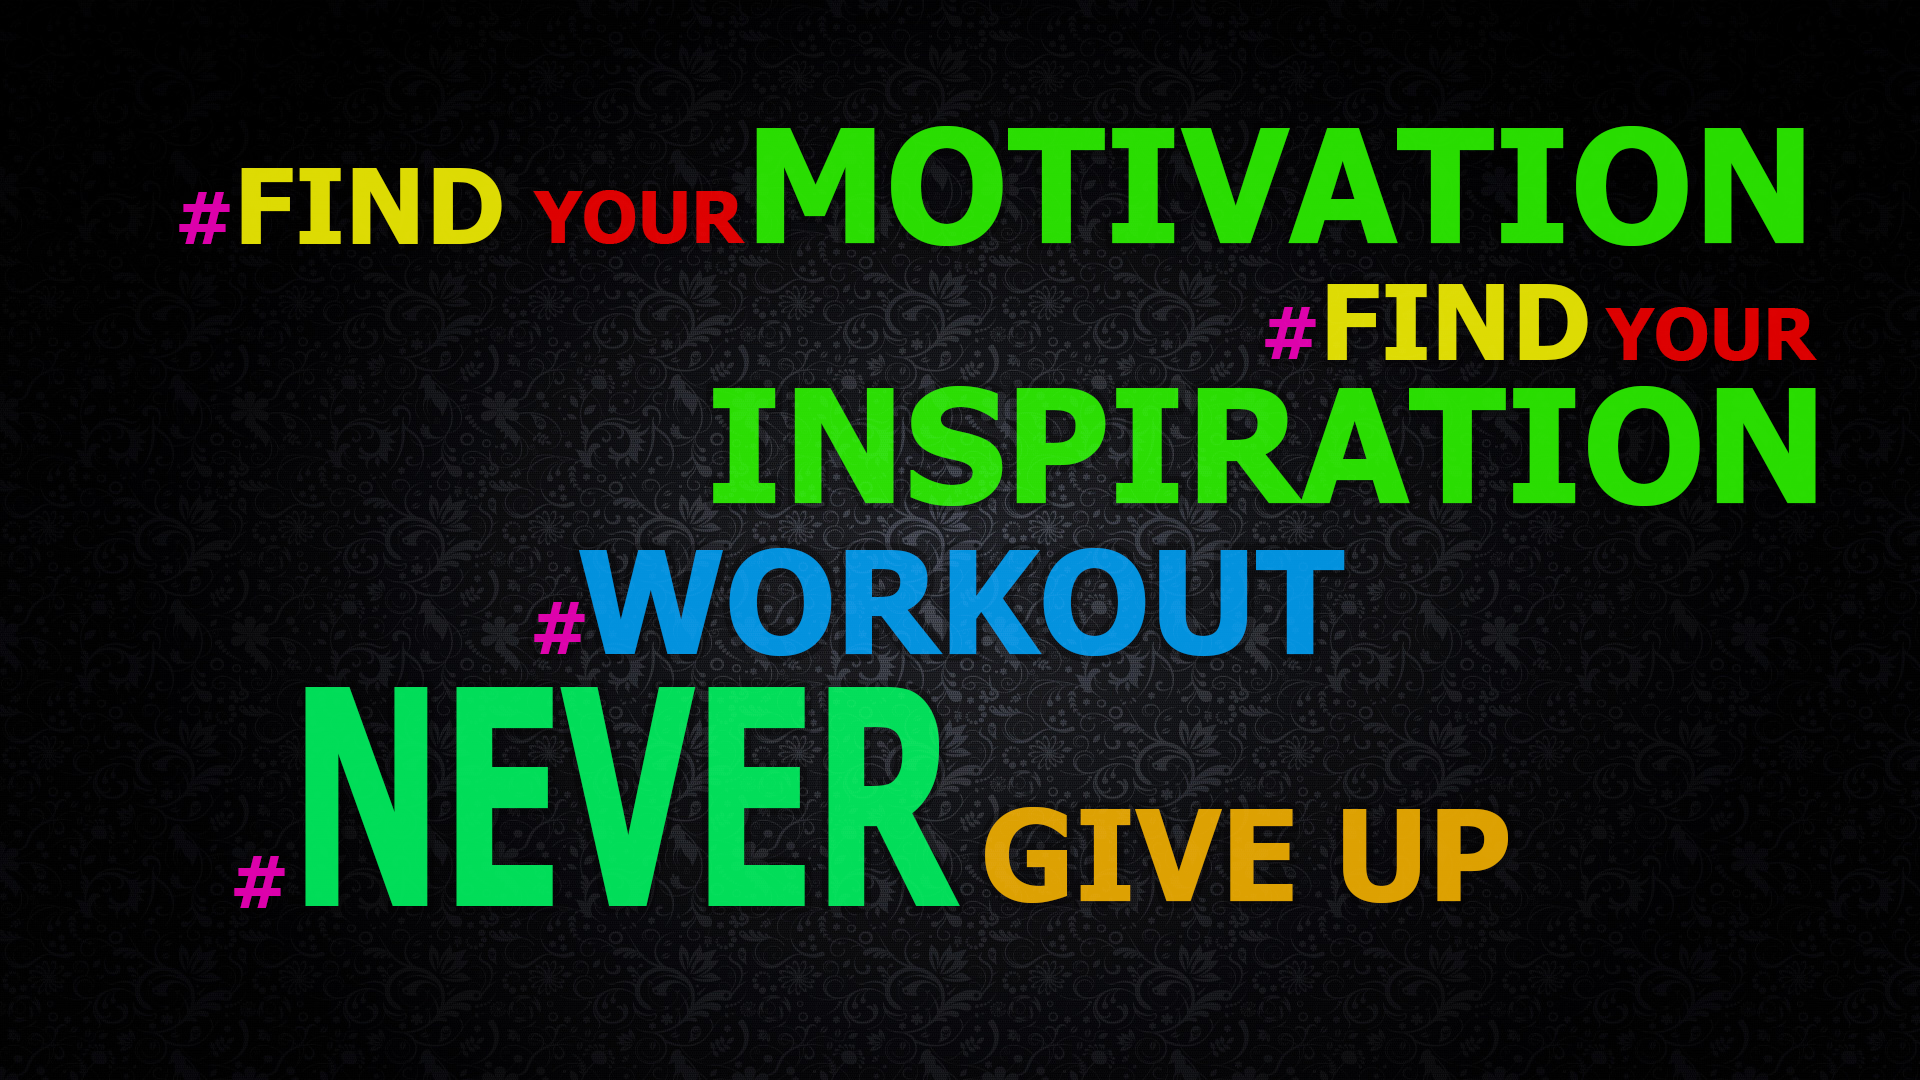 High Quality Image of Motivation | 1920x1080 px